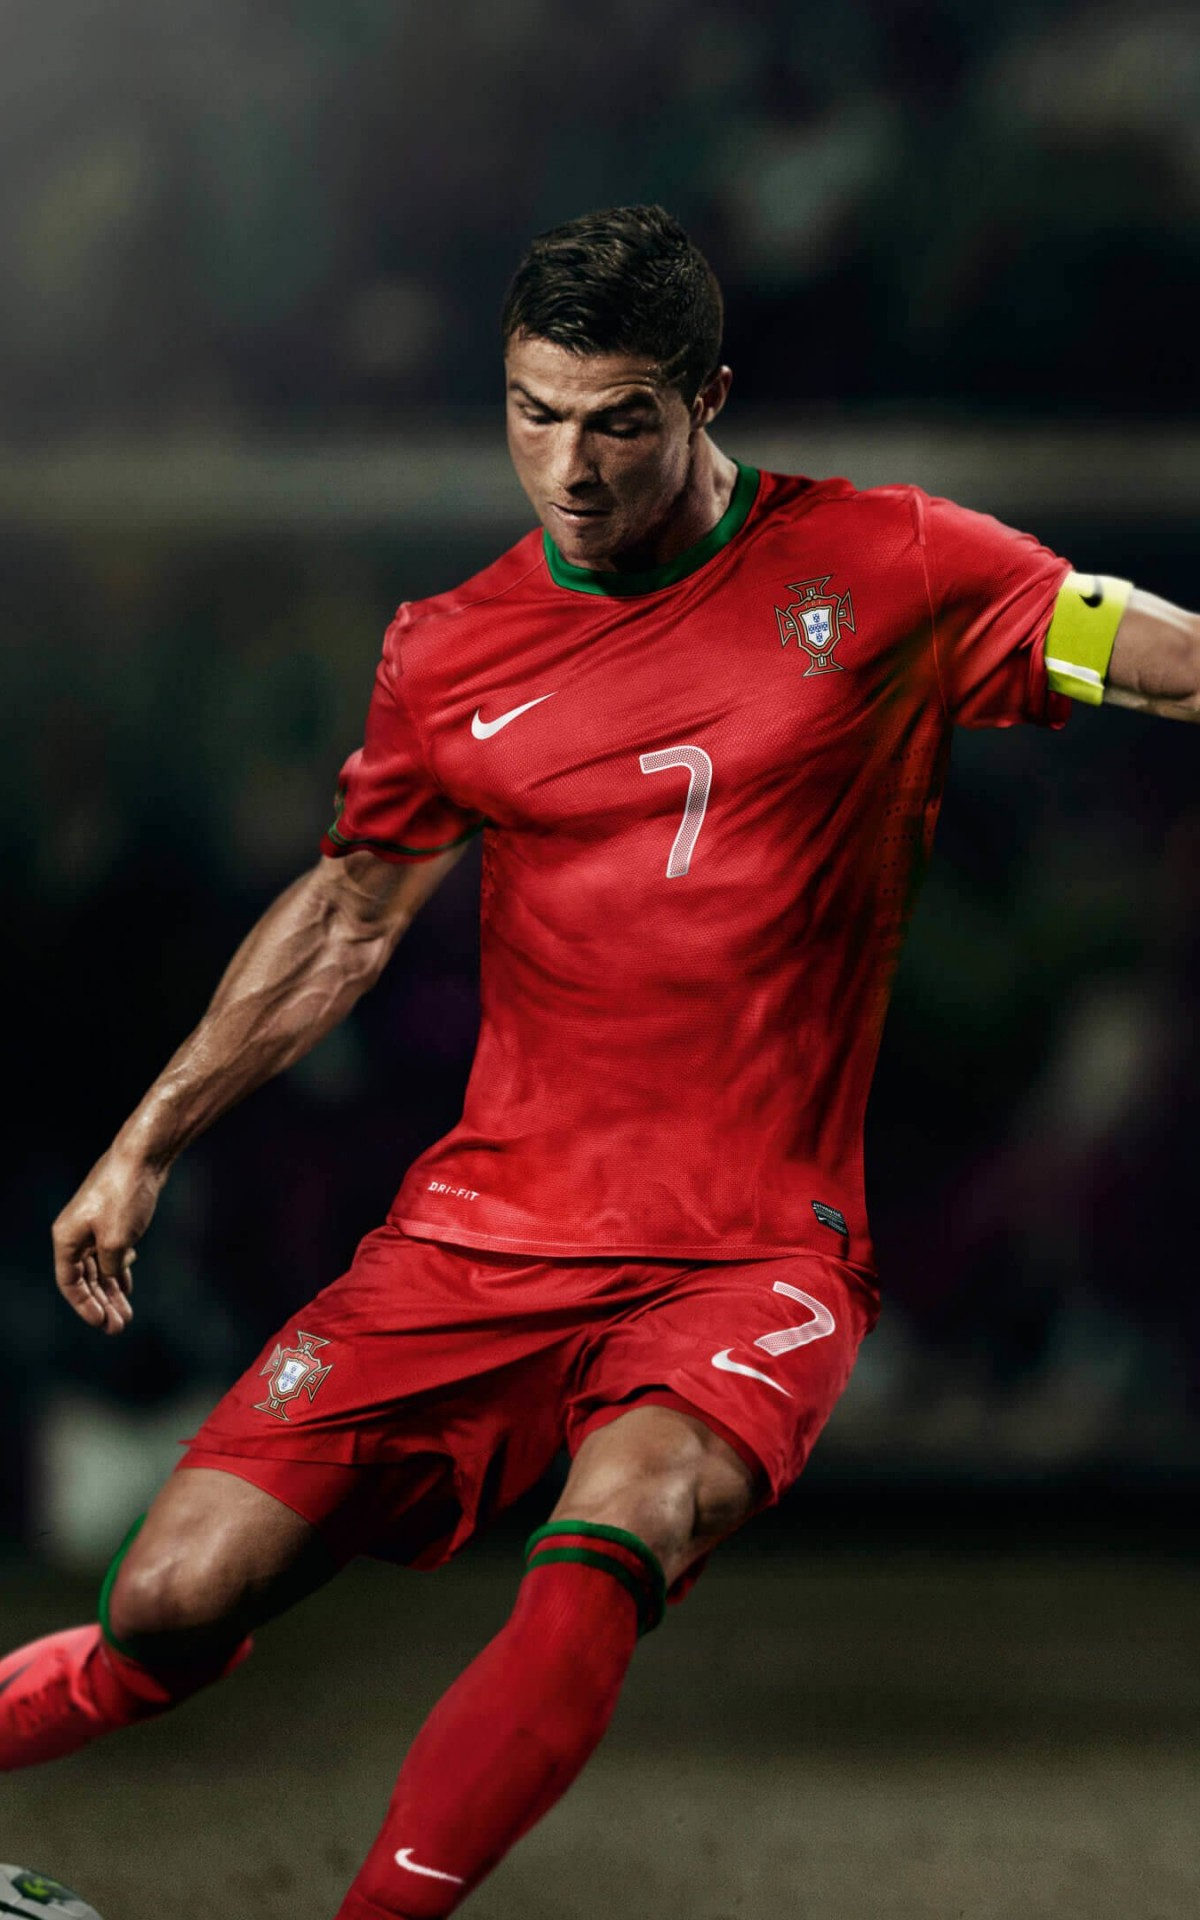 Cristiano Ronaldo In Portugal Jersey Wallpaper for Amazon Kindle Fire HDX